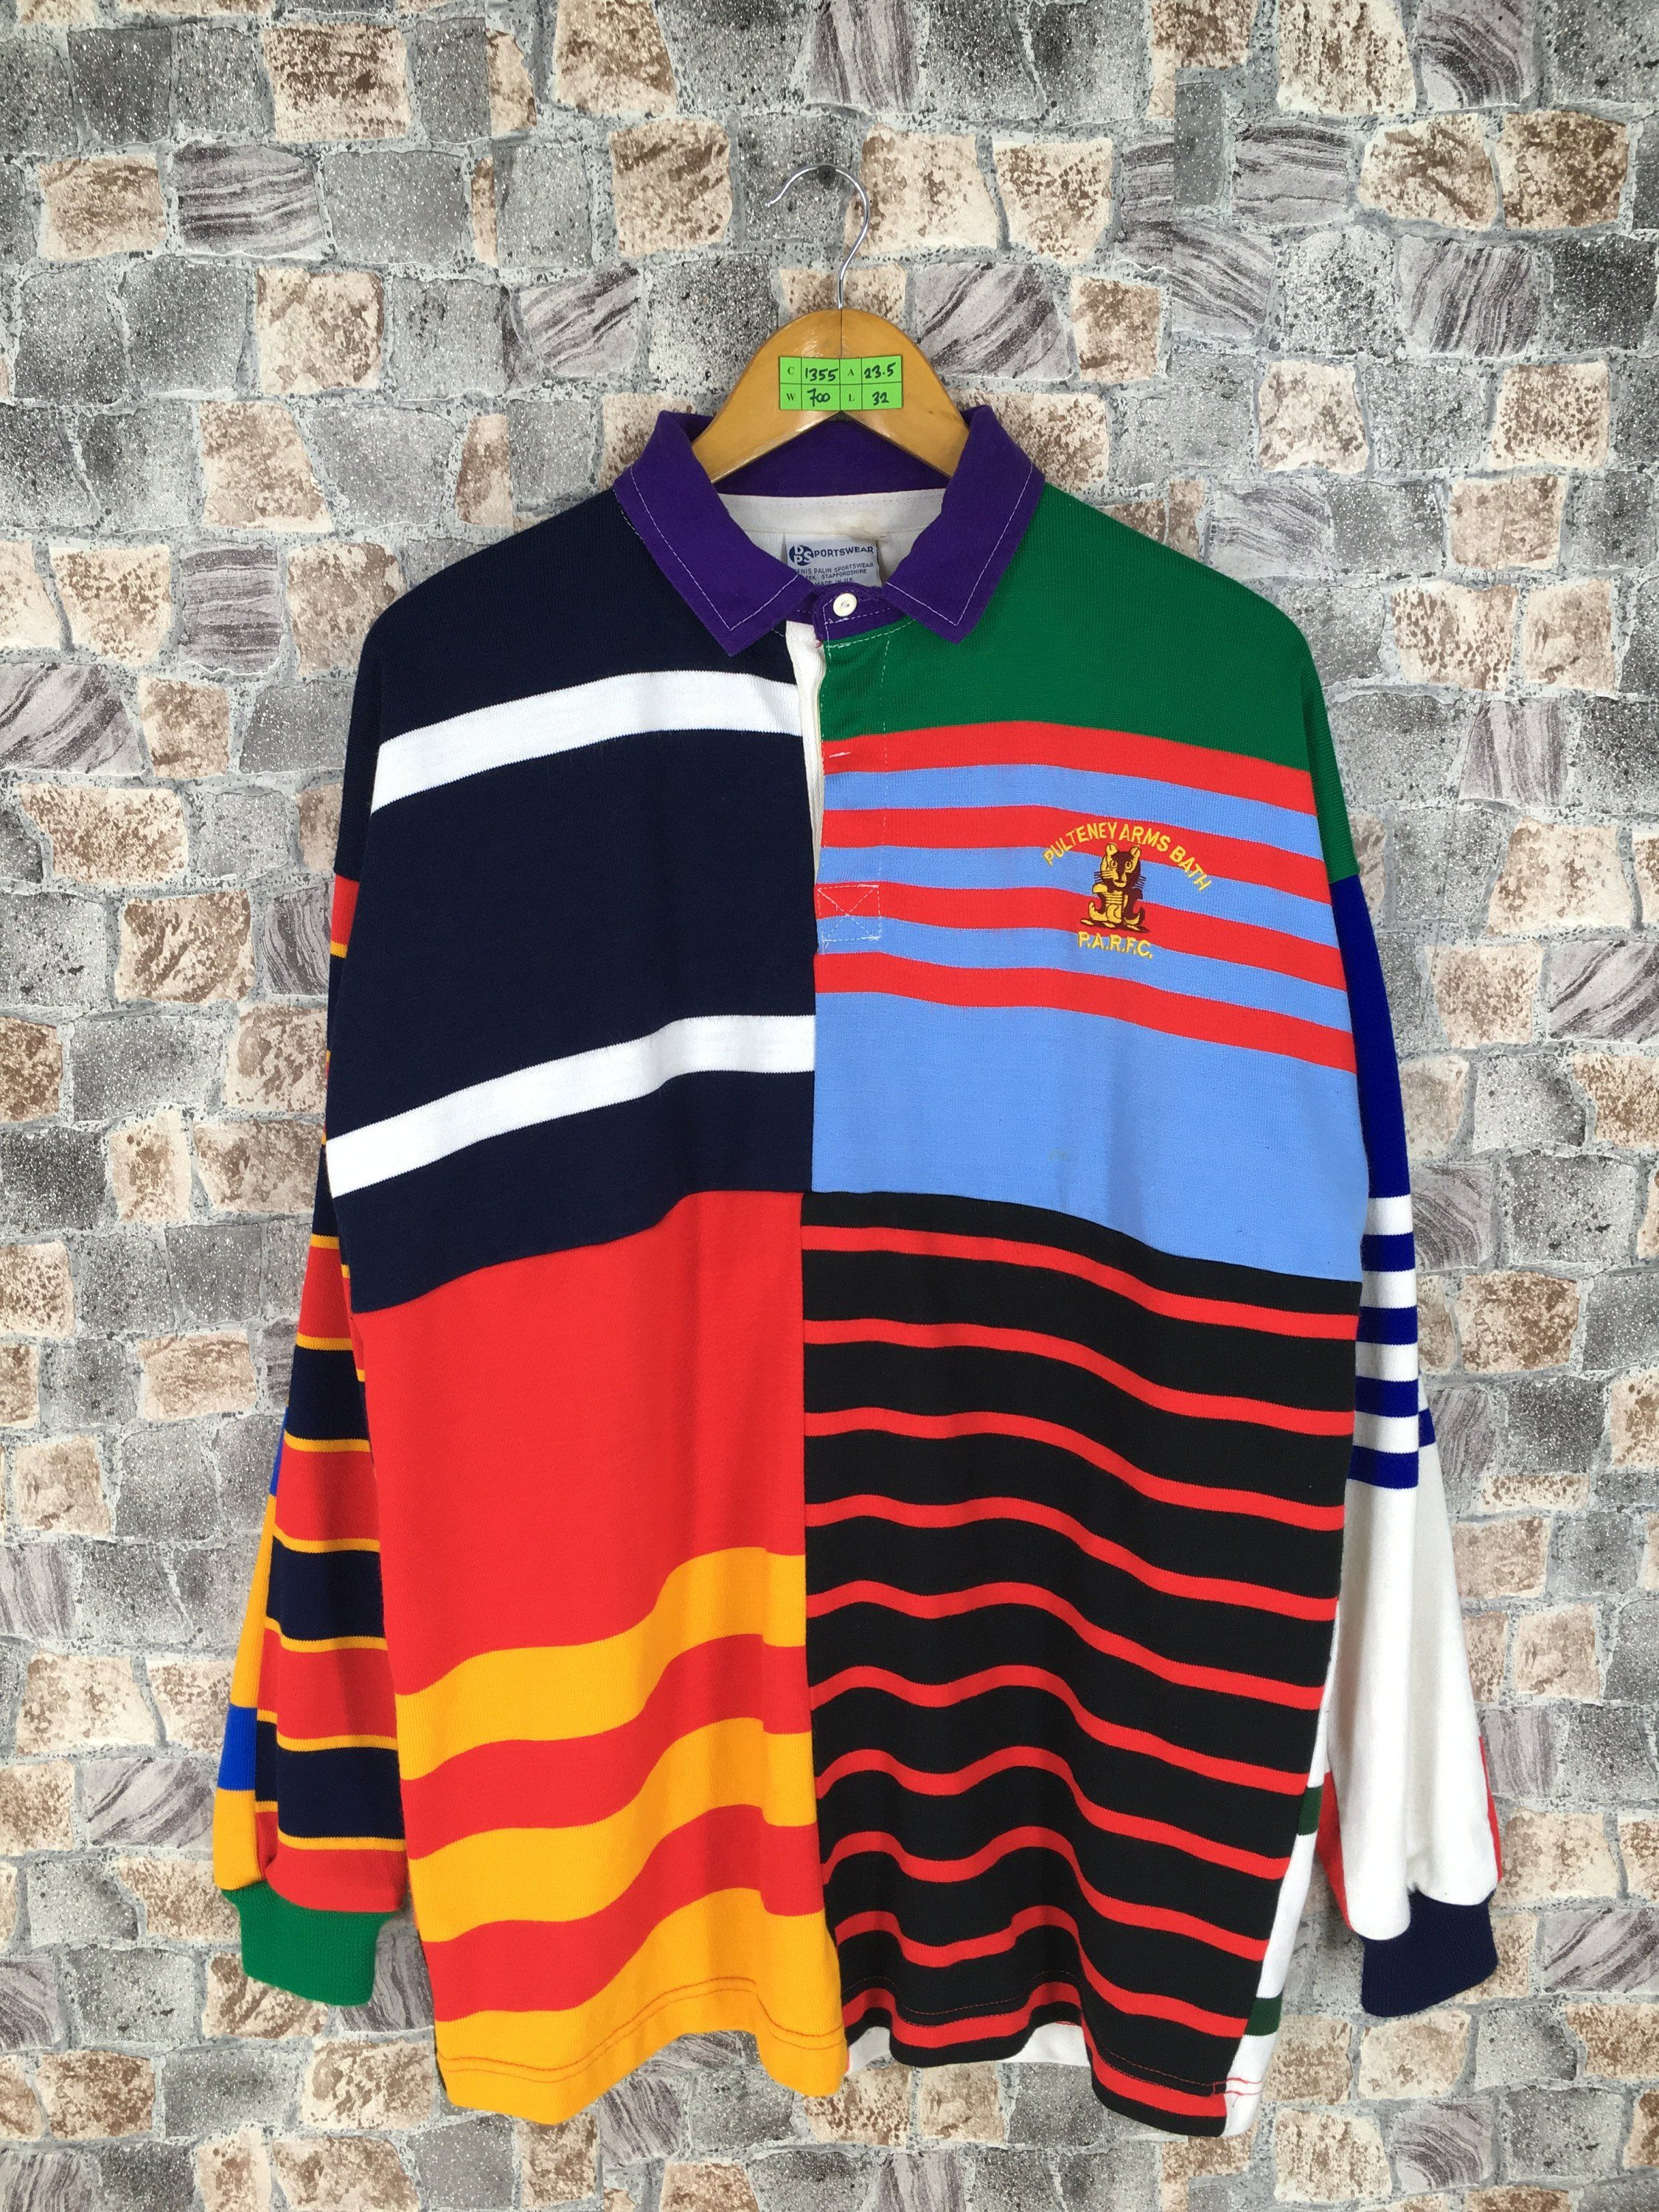 Predownload: Vintage Sportswear Polo Rugby Shirt Mens Large Colorblock 90s Etsy Vintage Sportswear Rugby Shirt Polo Rugby Shirt [ 3000 x 2250 Pixel ]